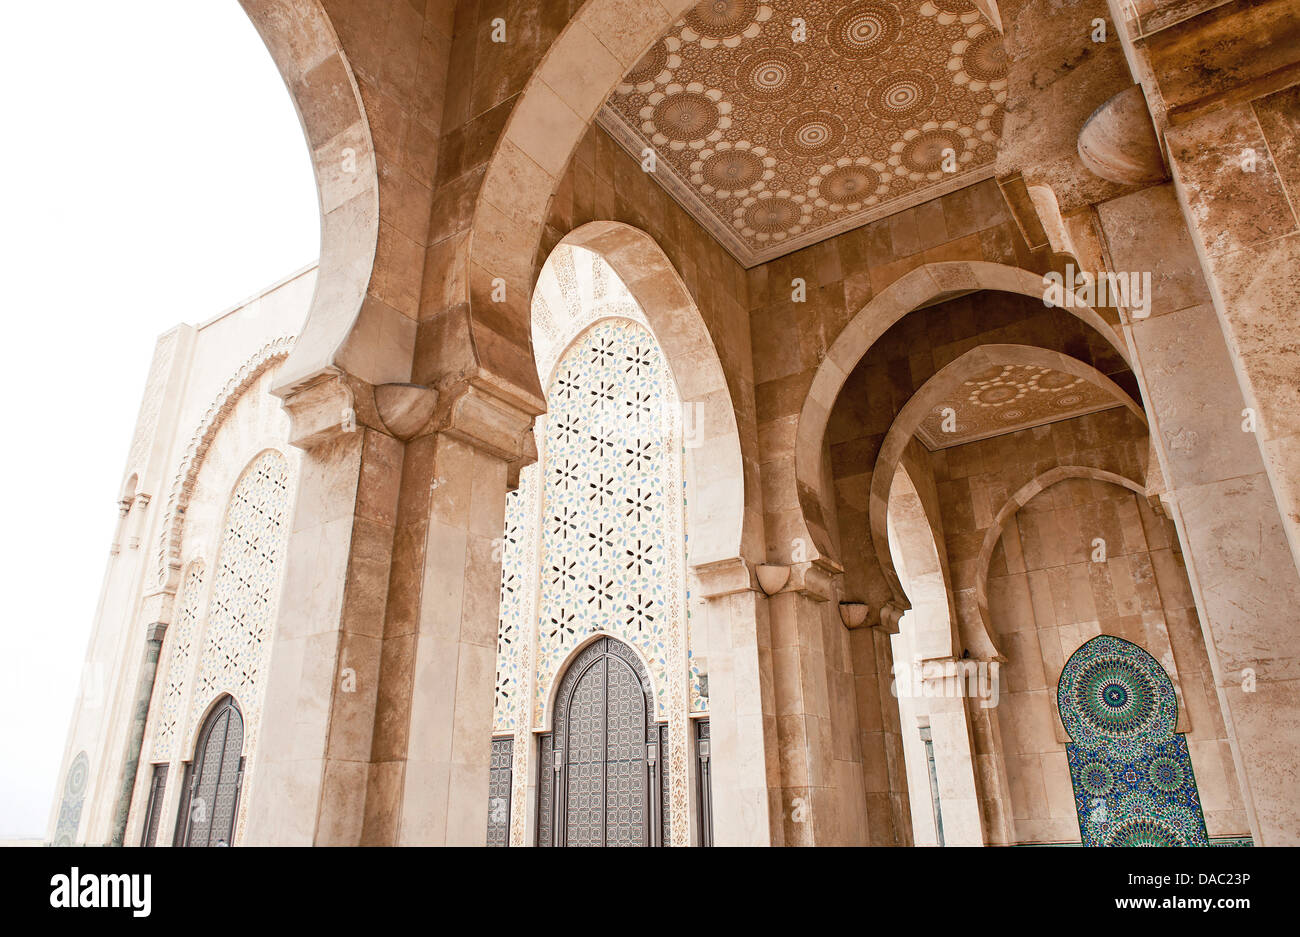 Interior of Hassan II Mosque, Casablanca, Morocco, Africa - Stock Image